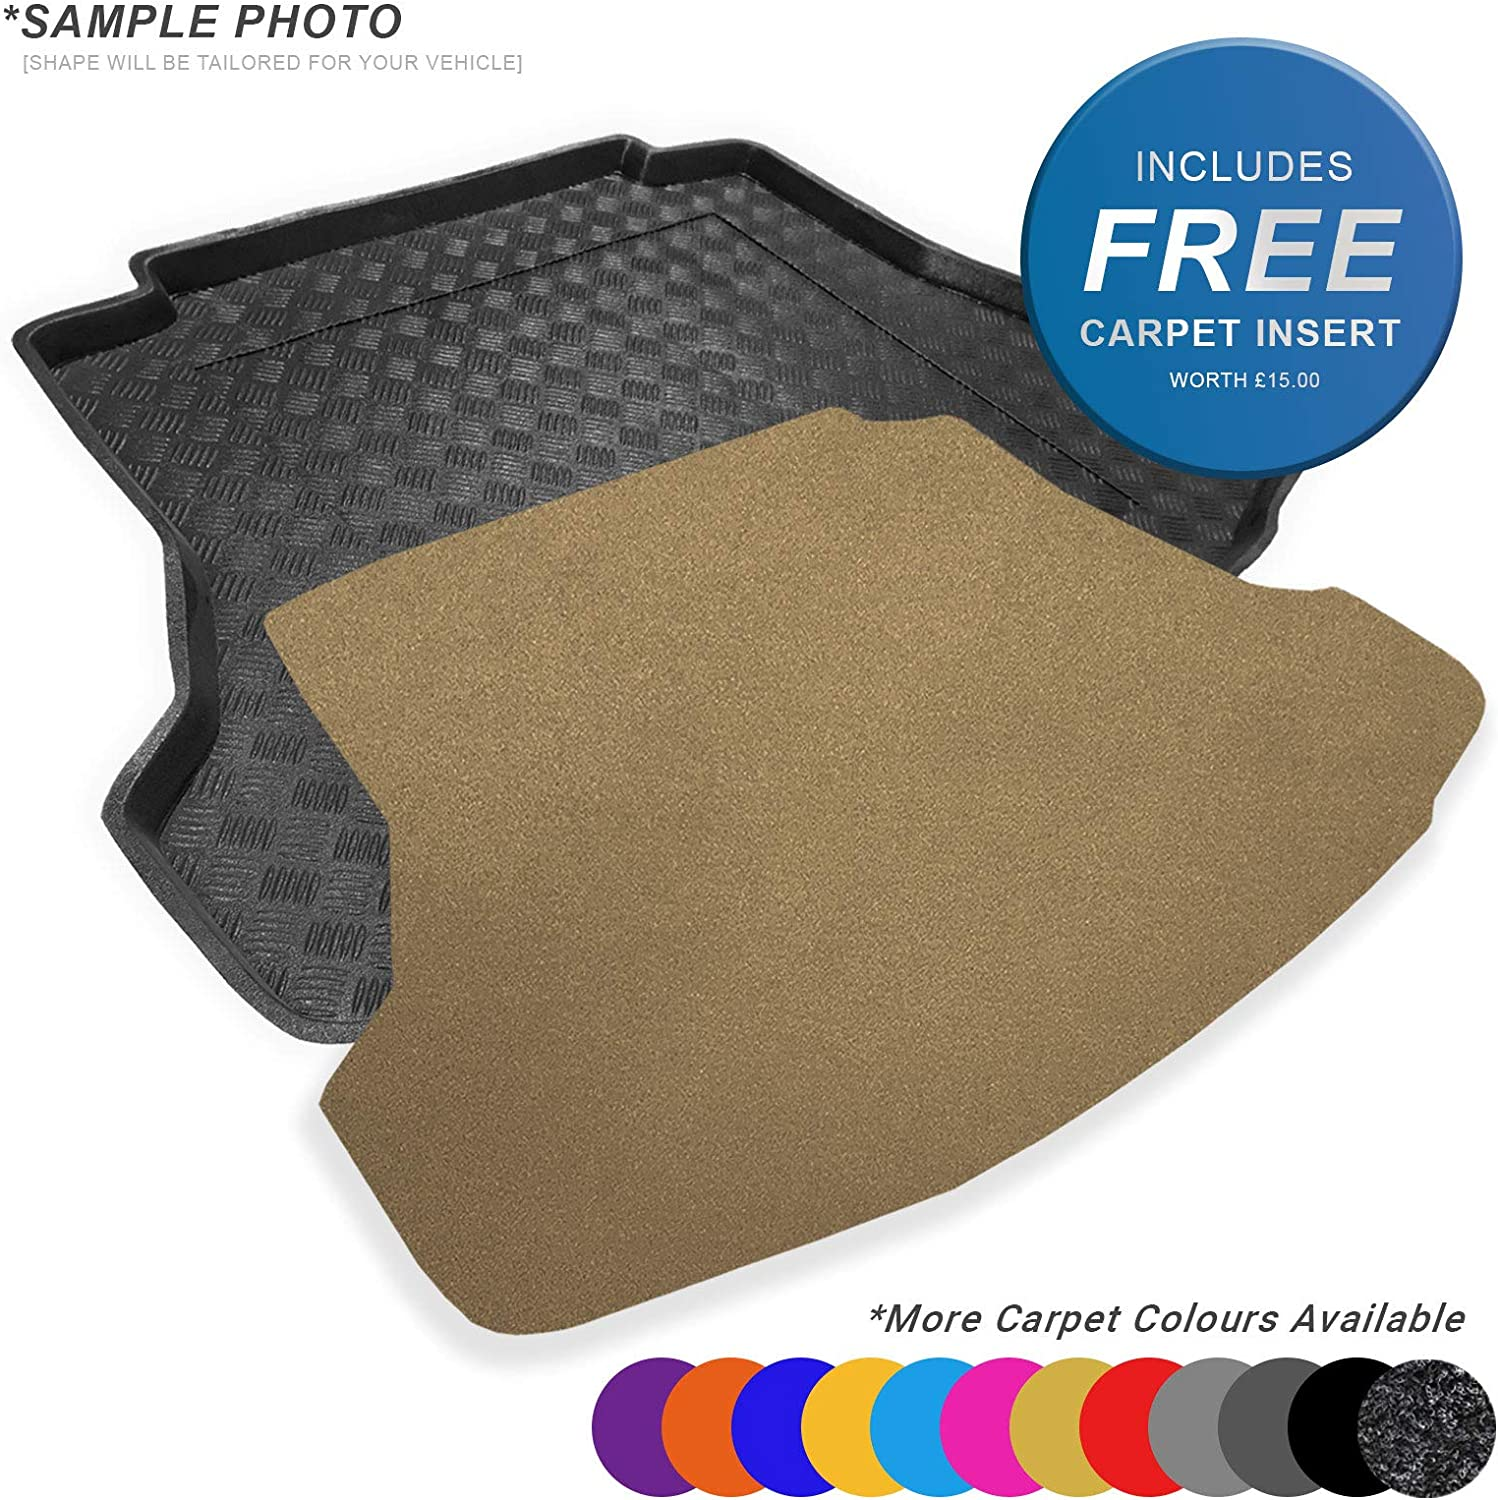 CARMATS4U.COM Tailored Boot Liner//Tray//Mat for Insignia II HB 2017 /& Removable Anti-Slip Grey Carpet Insert